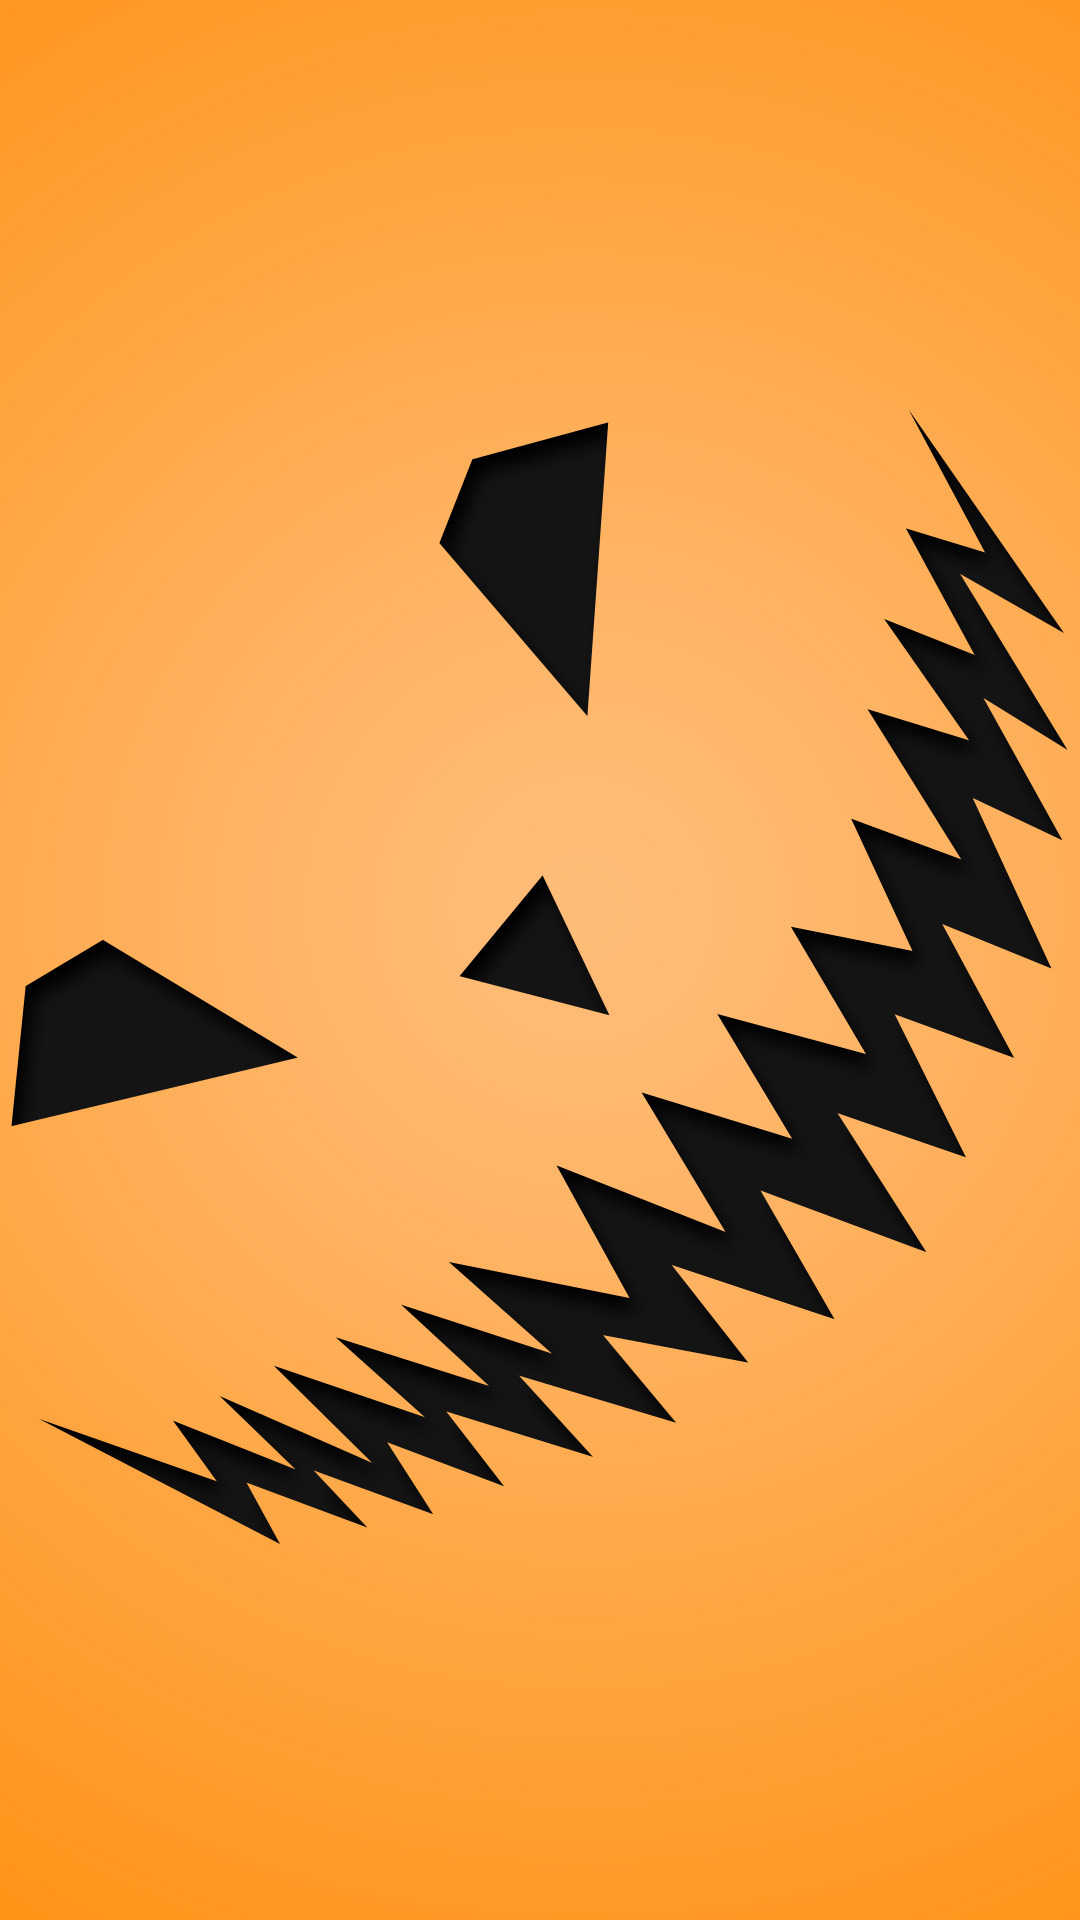 jack-o-lantern-face-halloween-iphone-wallpaper